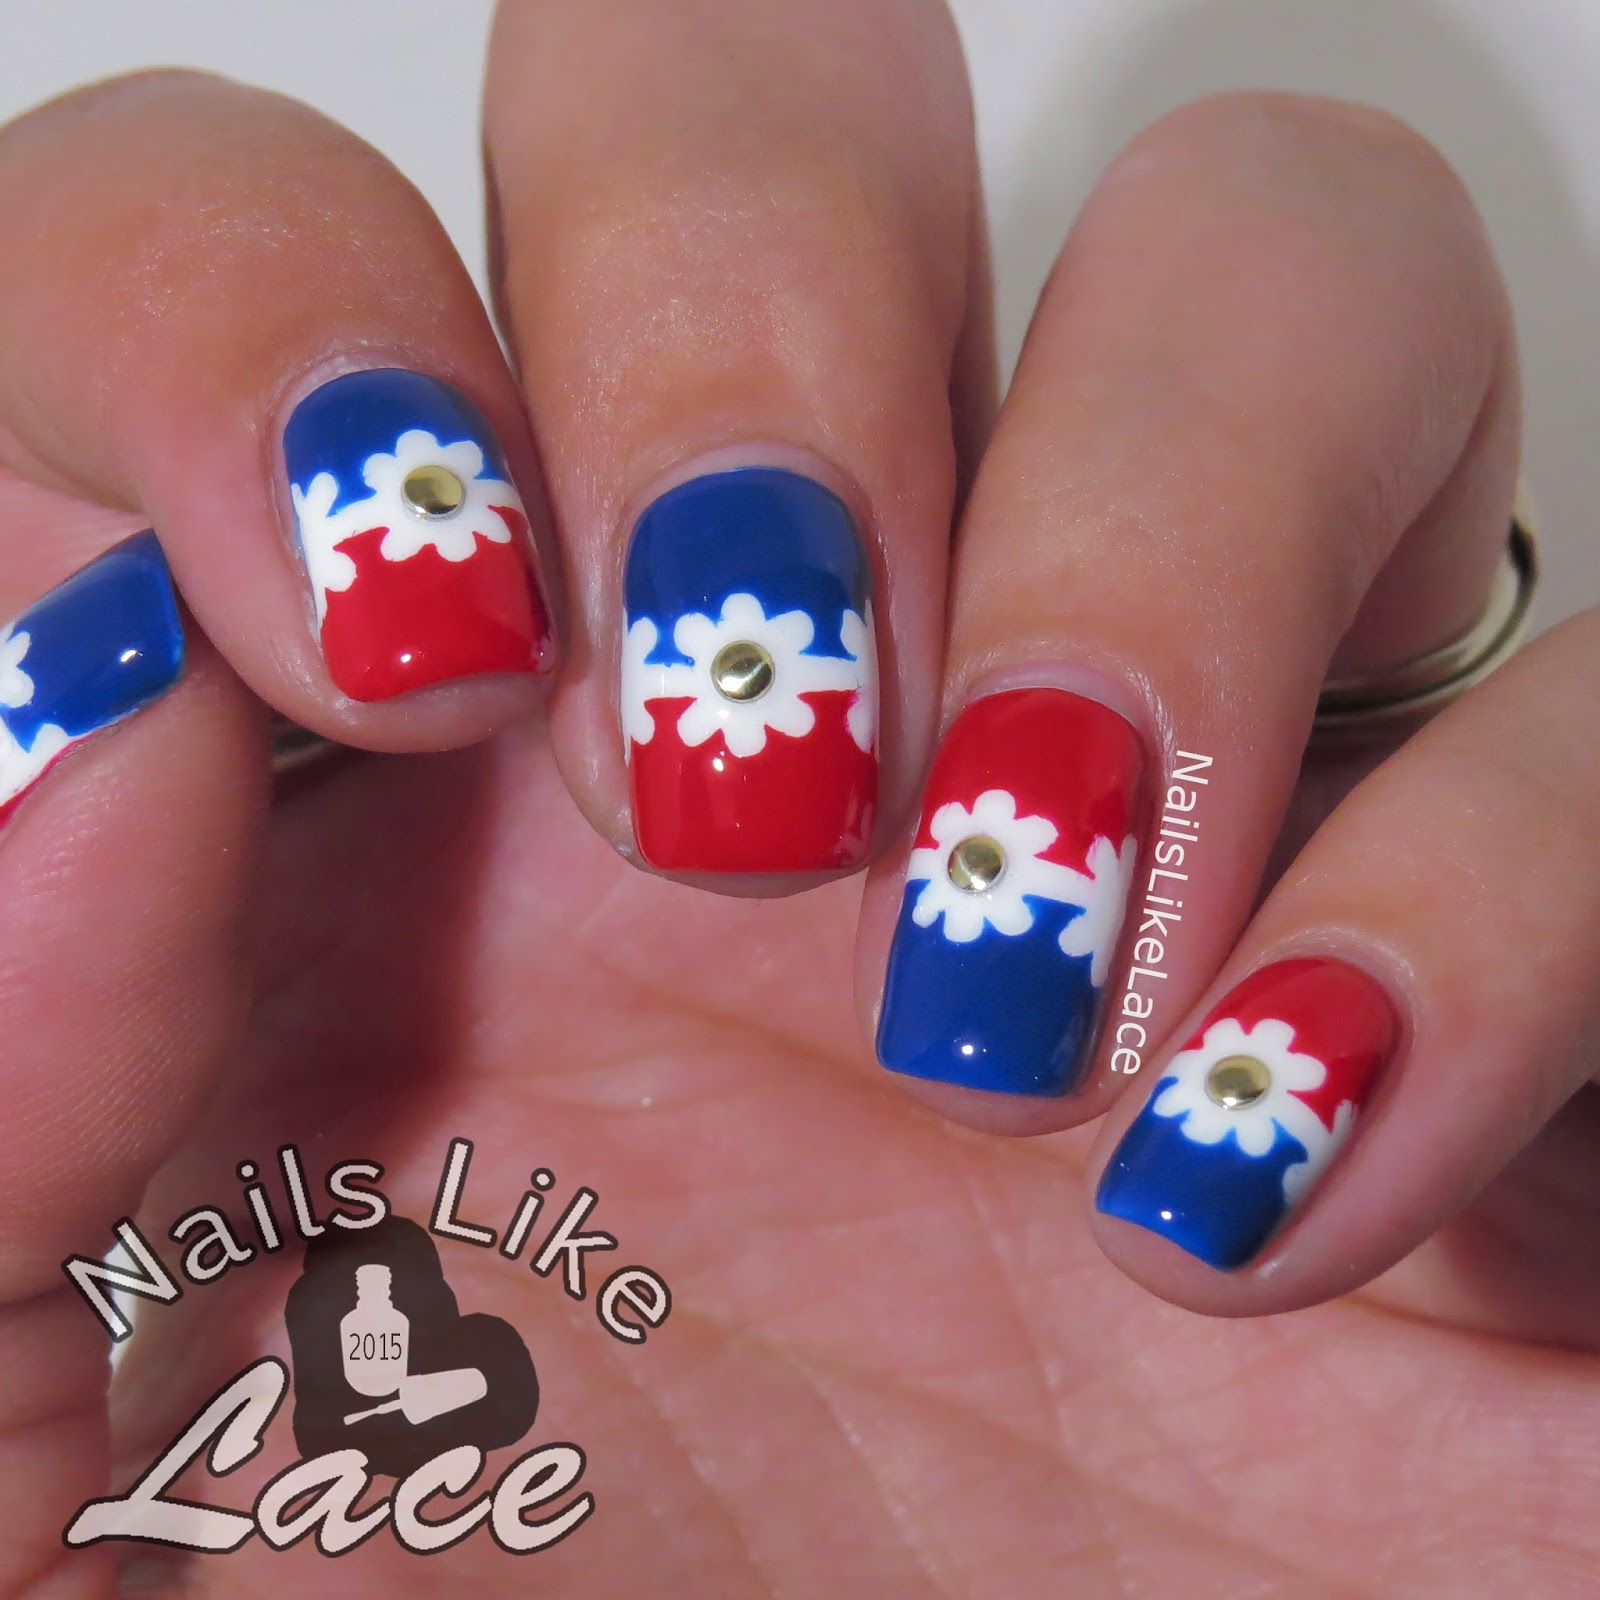 NailsLikeLace: Patriotic Daisy Chain feat. LOOK Nail Color